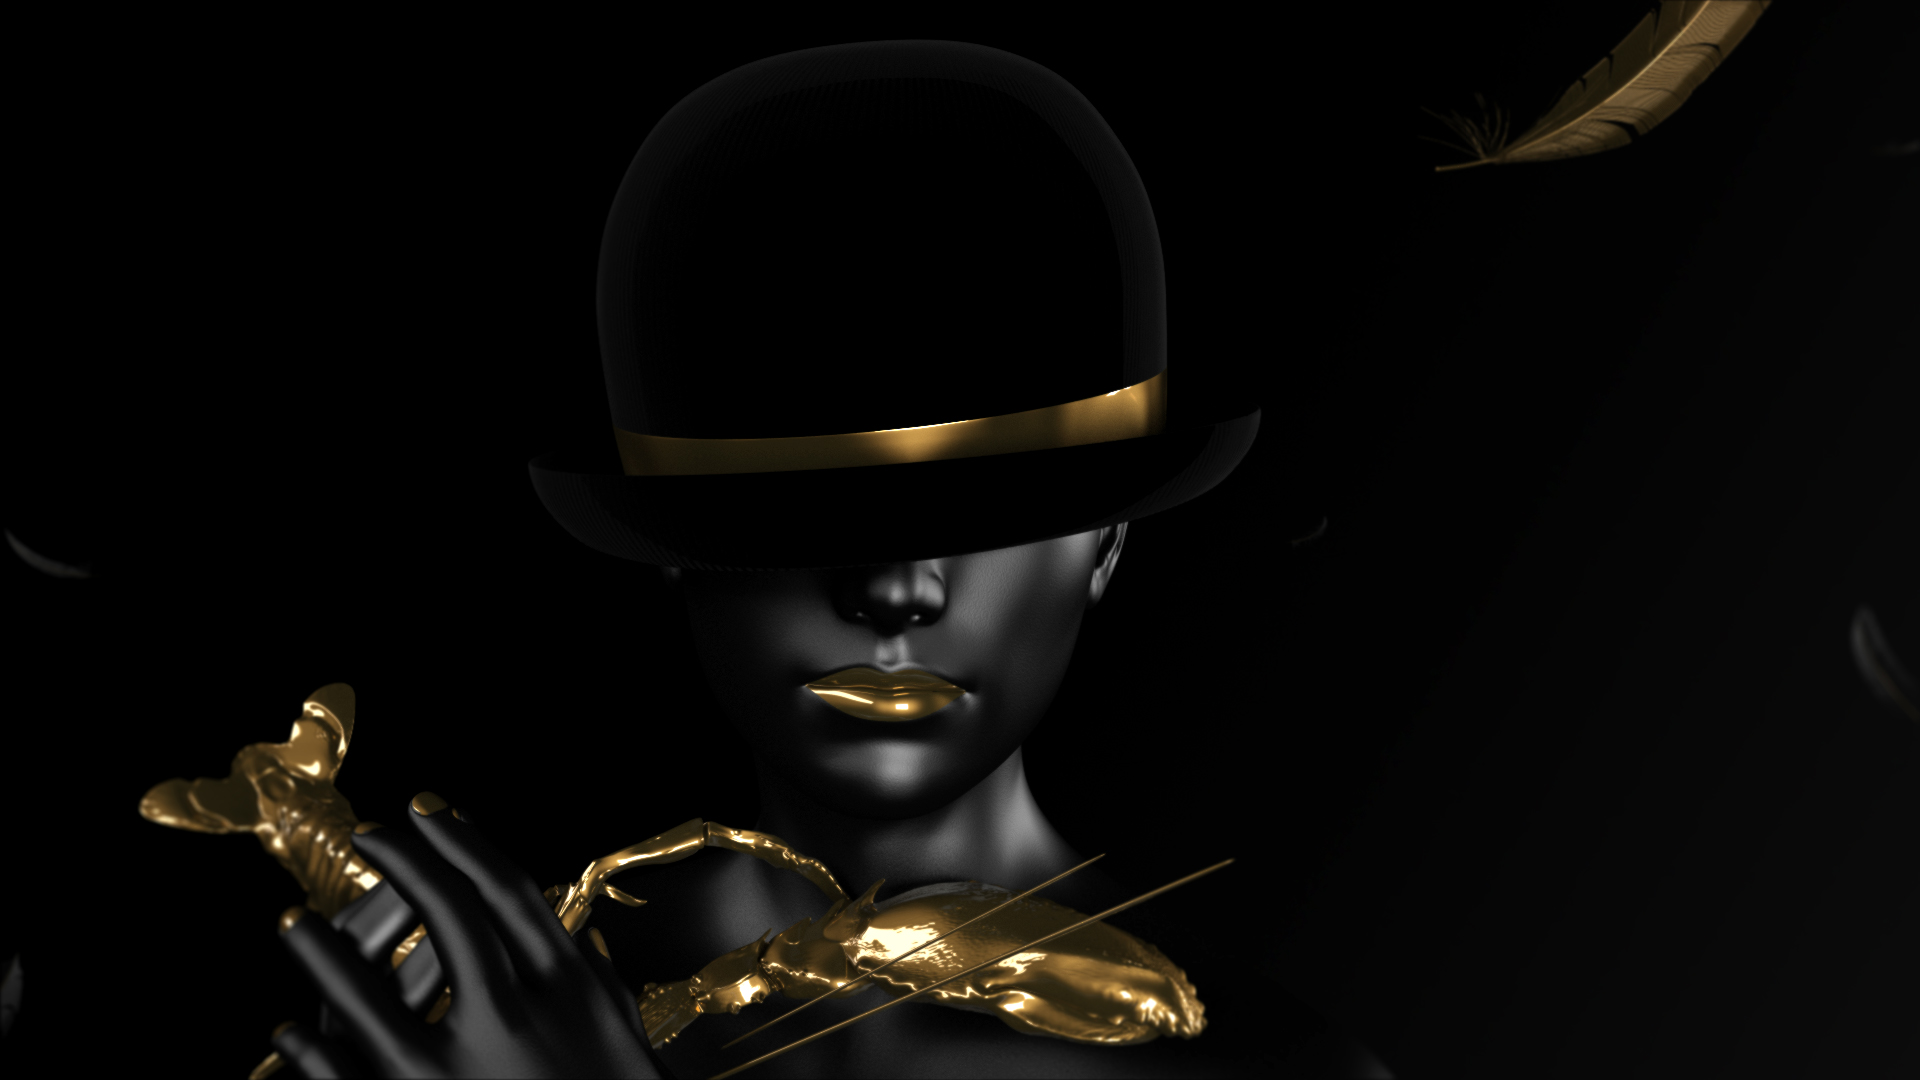 3d_frame_style_black_gold_cinema4d_art_direction_melo_motiongraphics_03